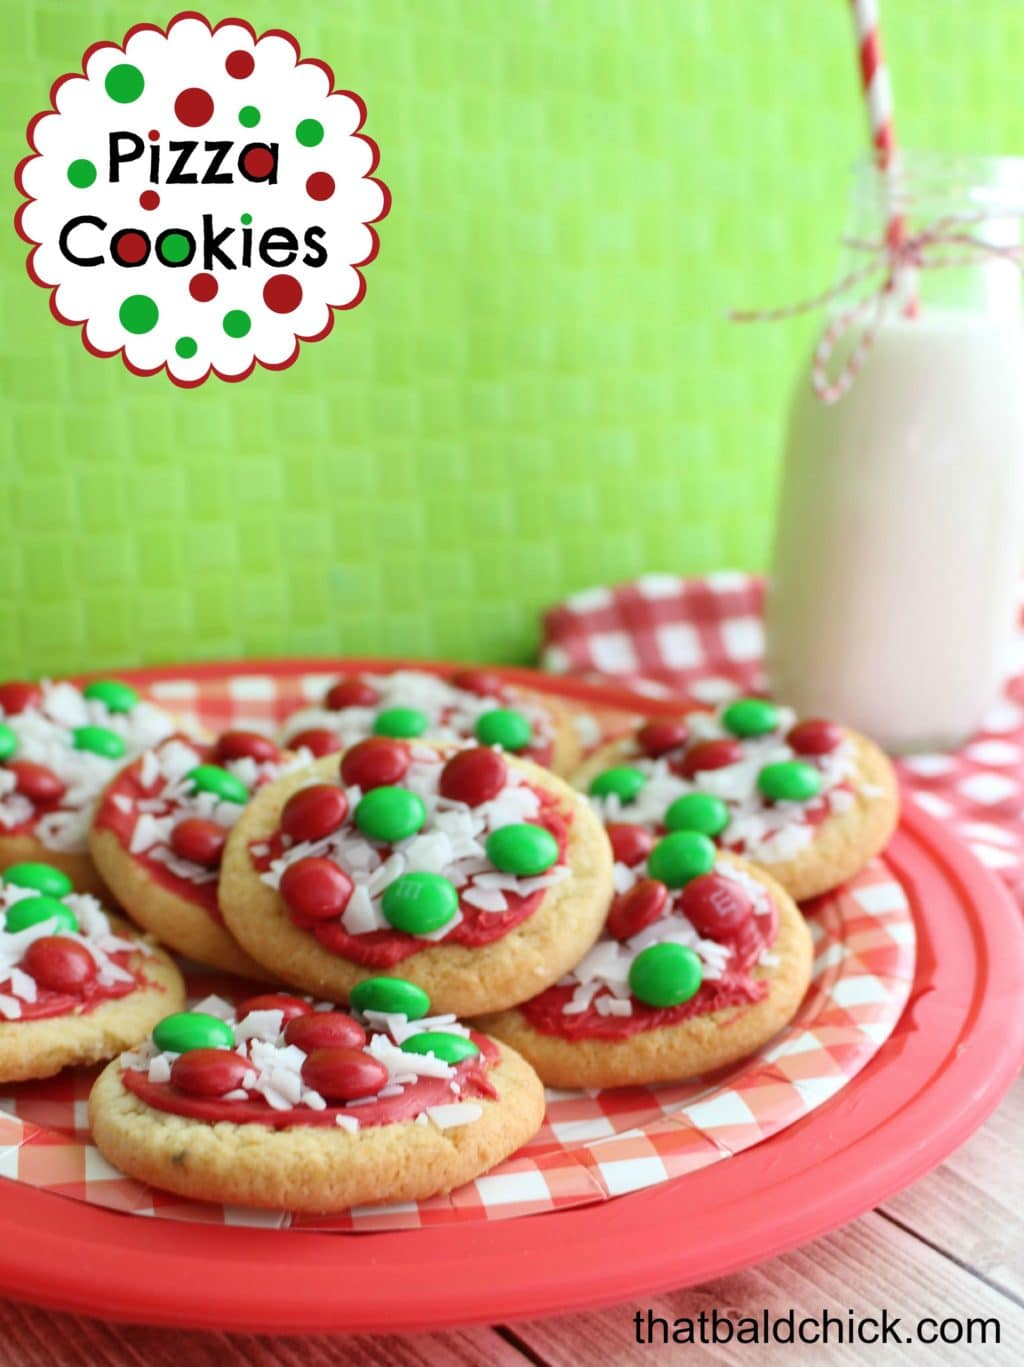 Pizza Cookies @thatbaldchick